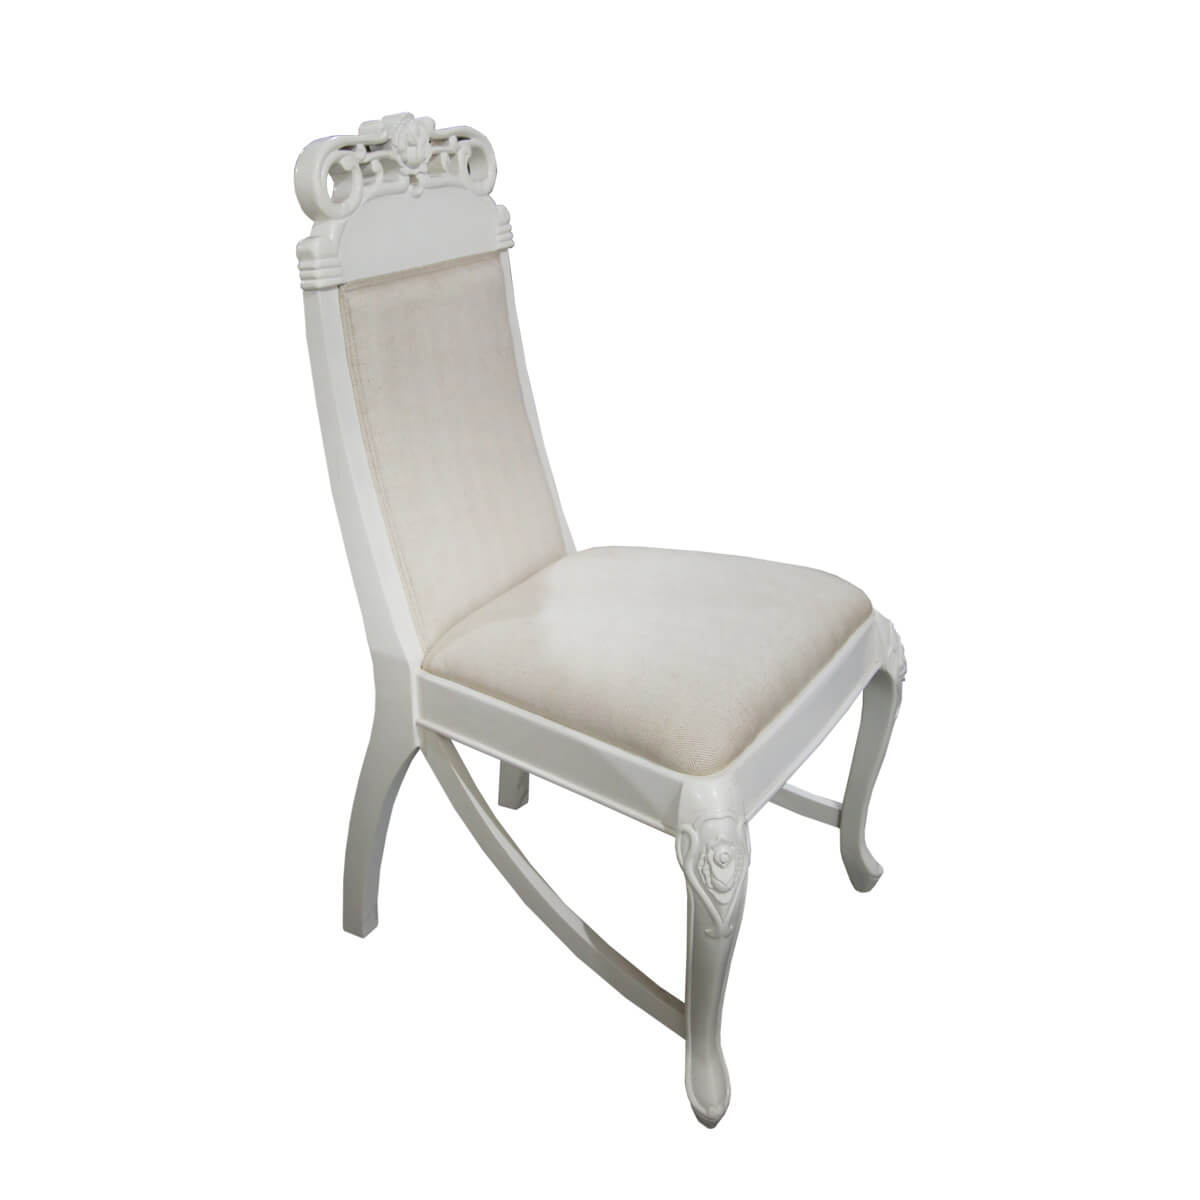 Gothenburg Traditional White and Ivory Mahogany Wood Dining Chair